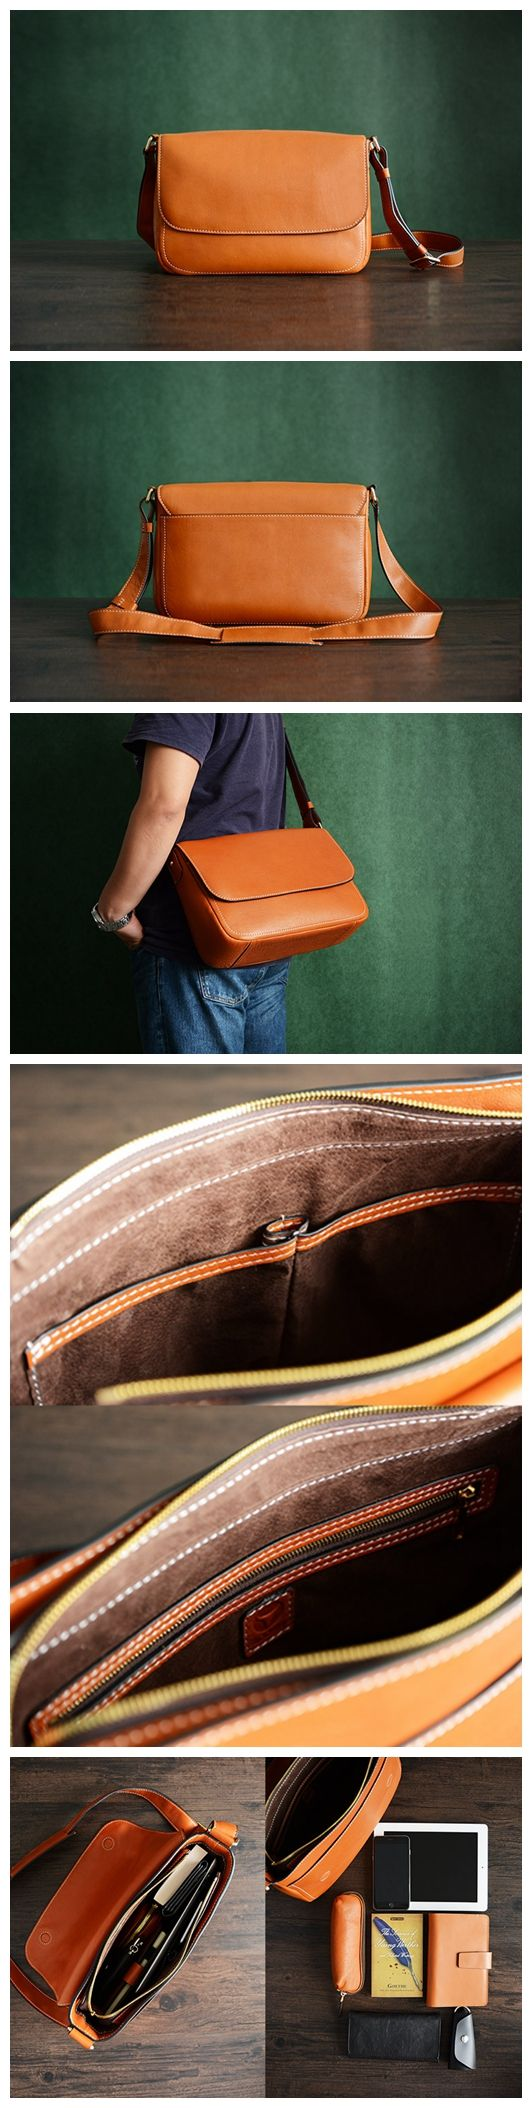 Custom Handmade Vegetable Tanned Italian Leather Messenger Satchel Bag Crossbody Shoulder Bag